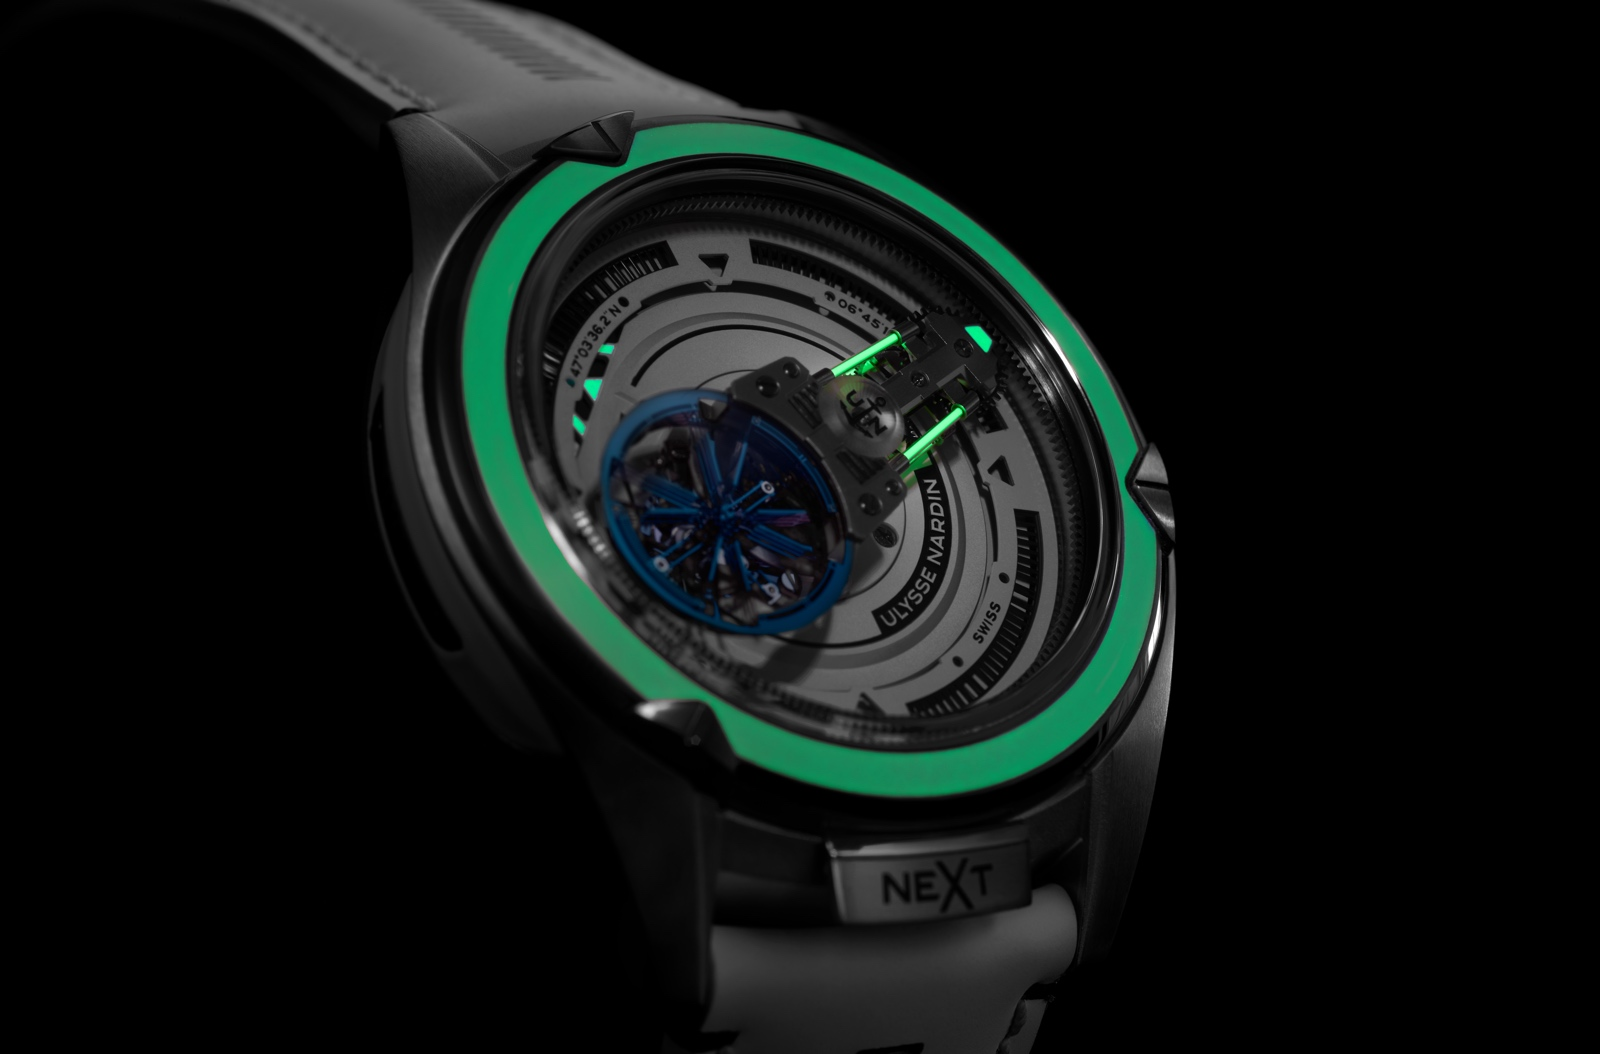 Ulysse Nardin Freak neXt - Luminova